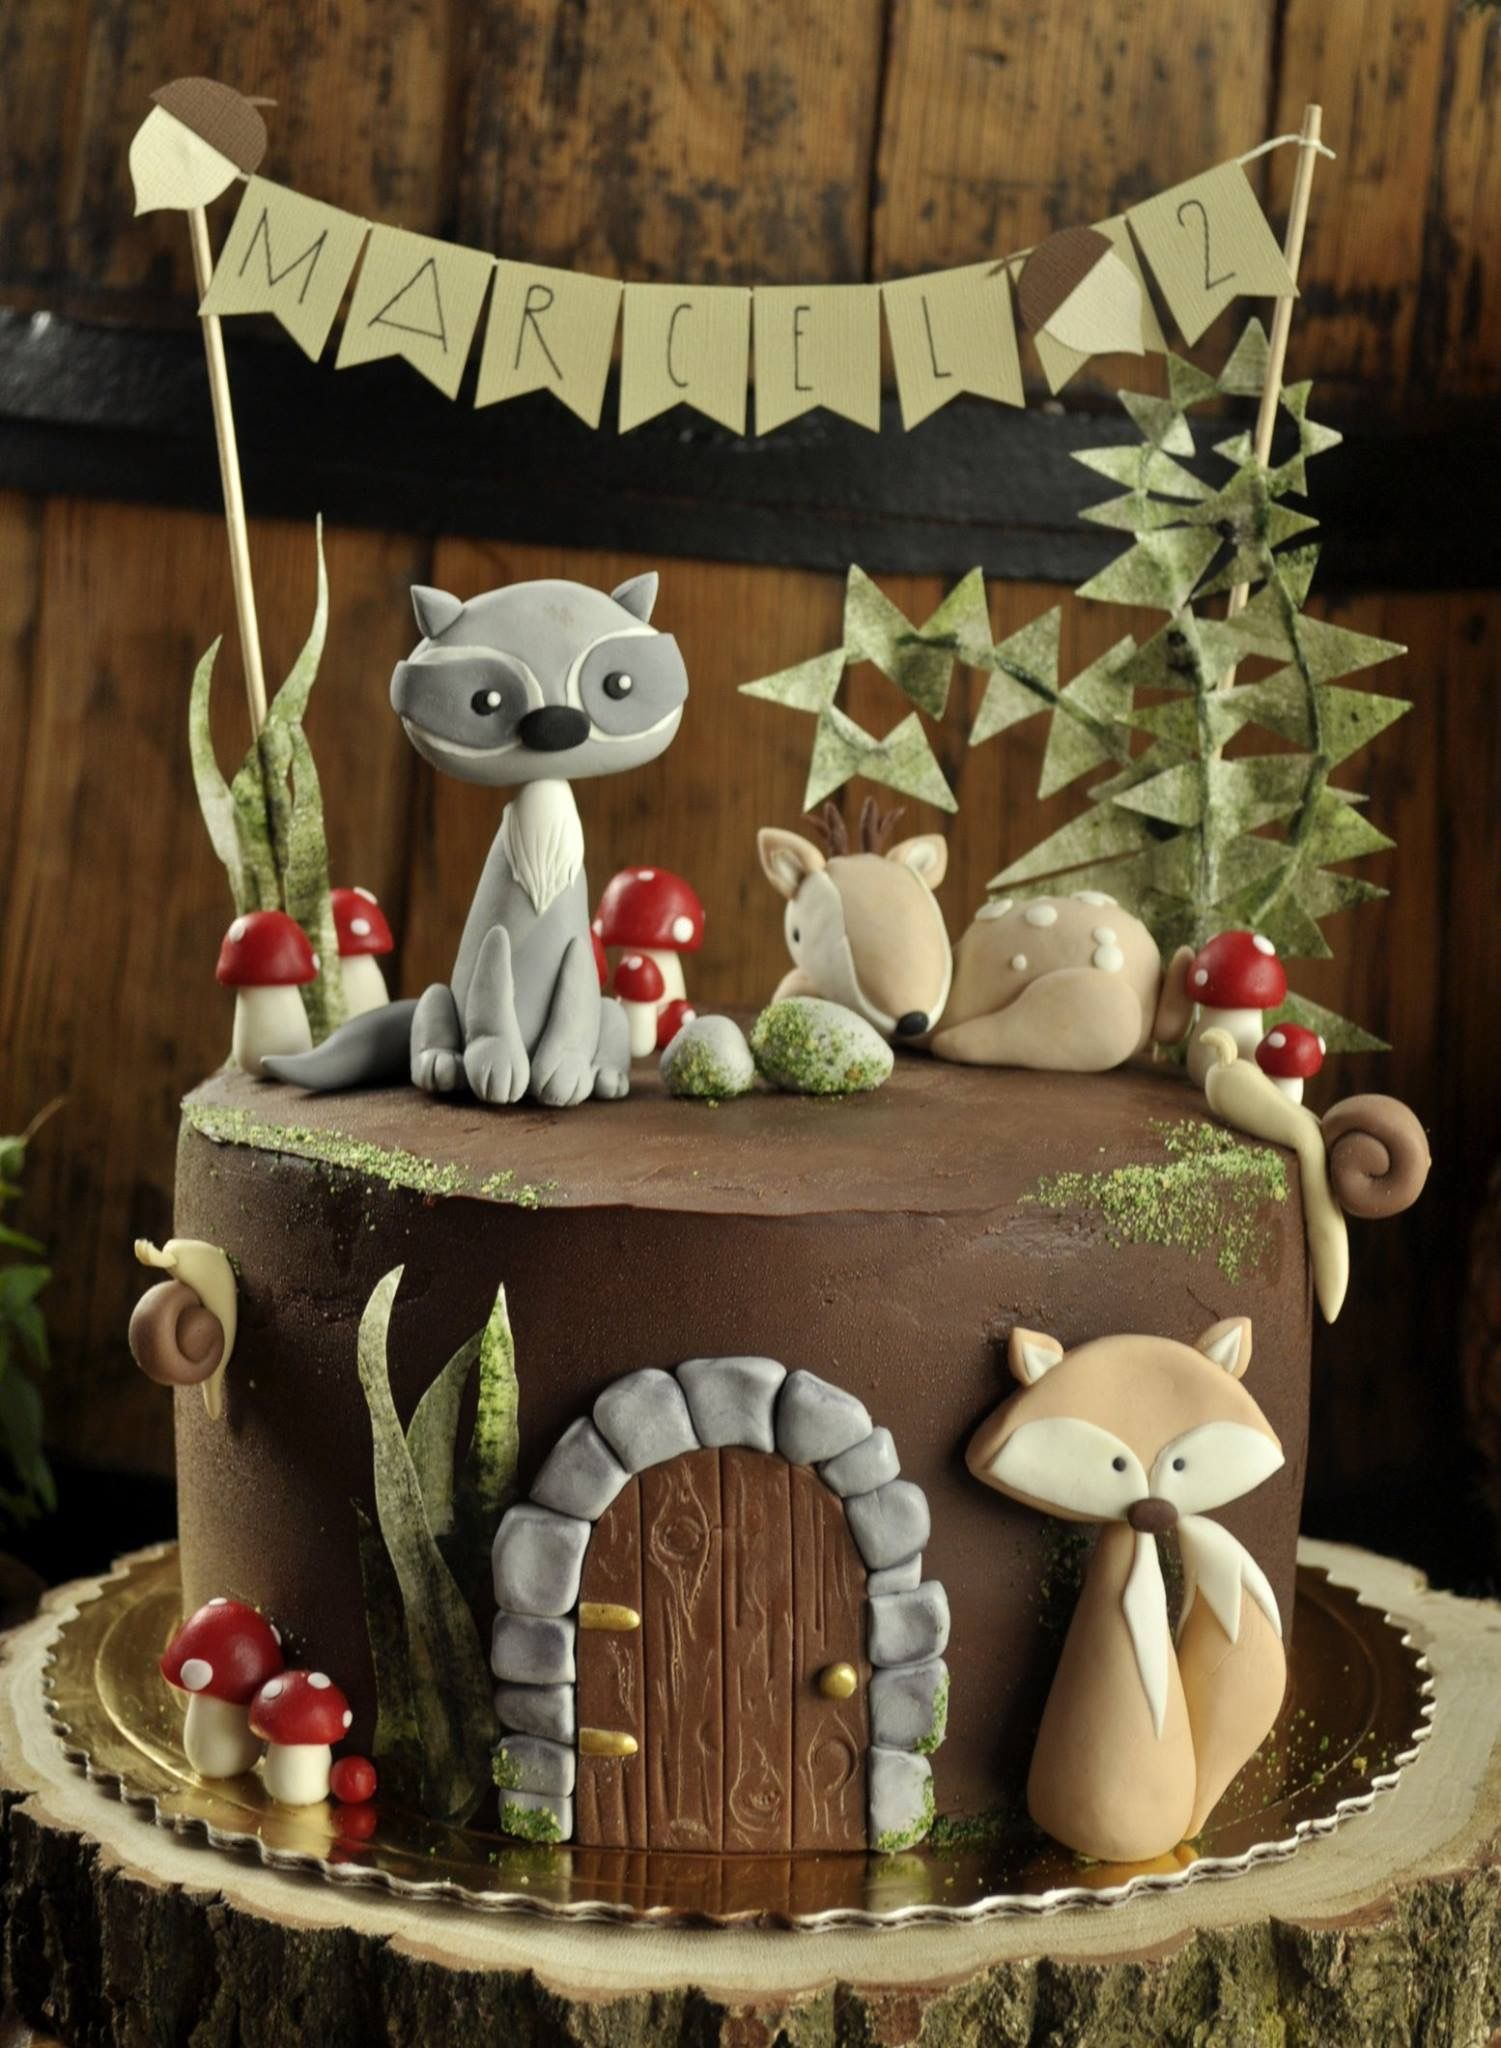 Coole Backideen Pin By Sheryl Segal On Cakes For Kids Torten Fondant Figuren